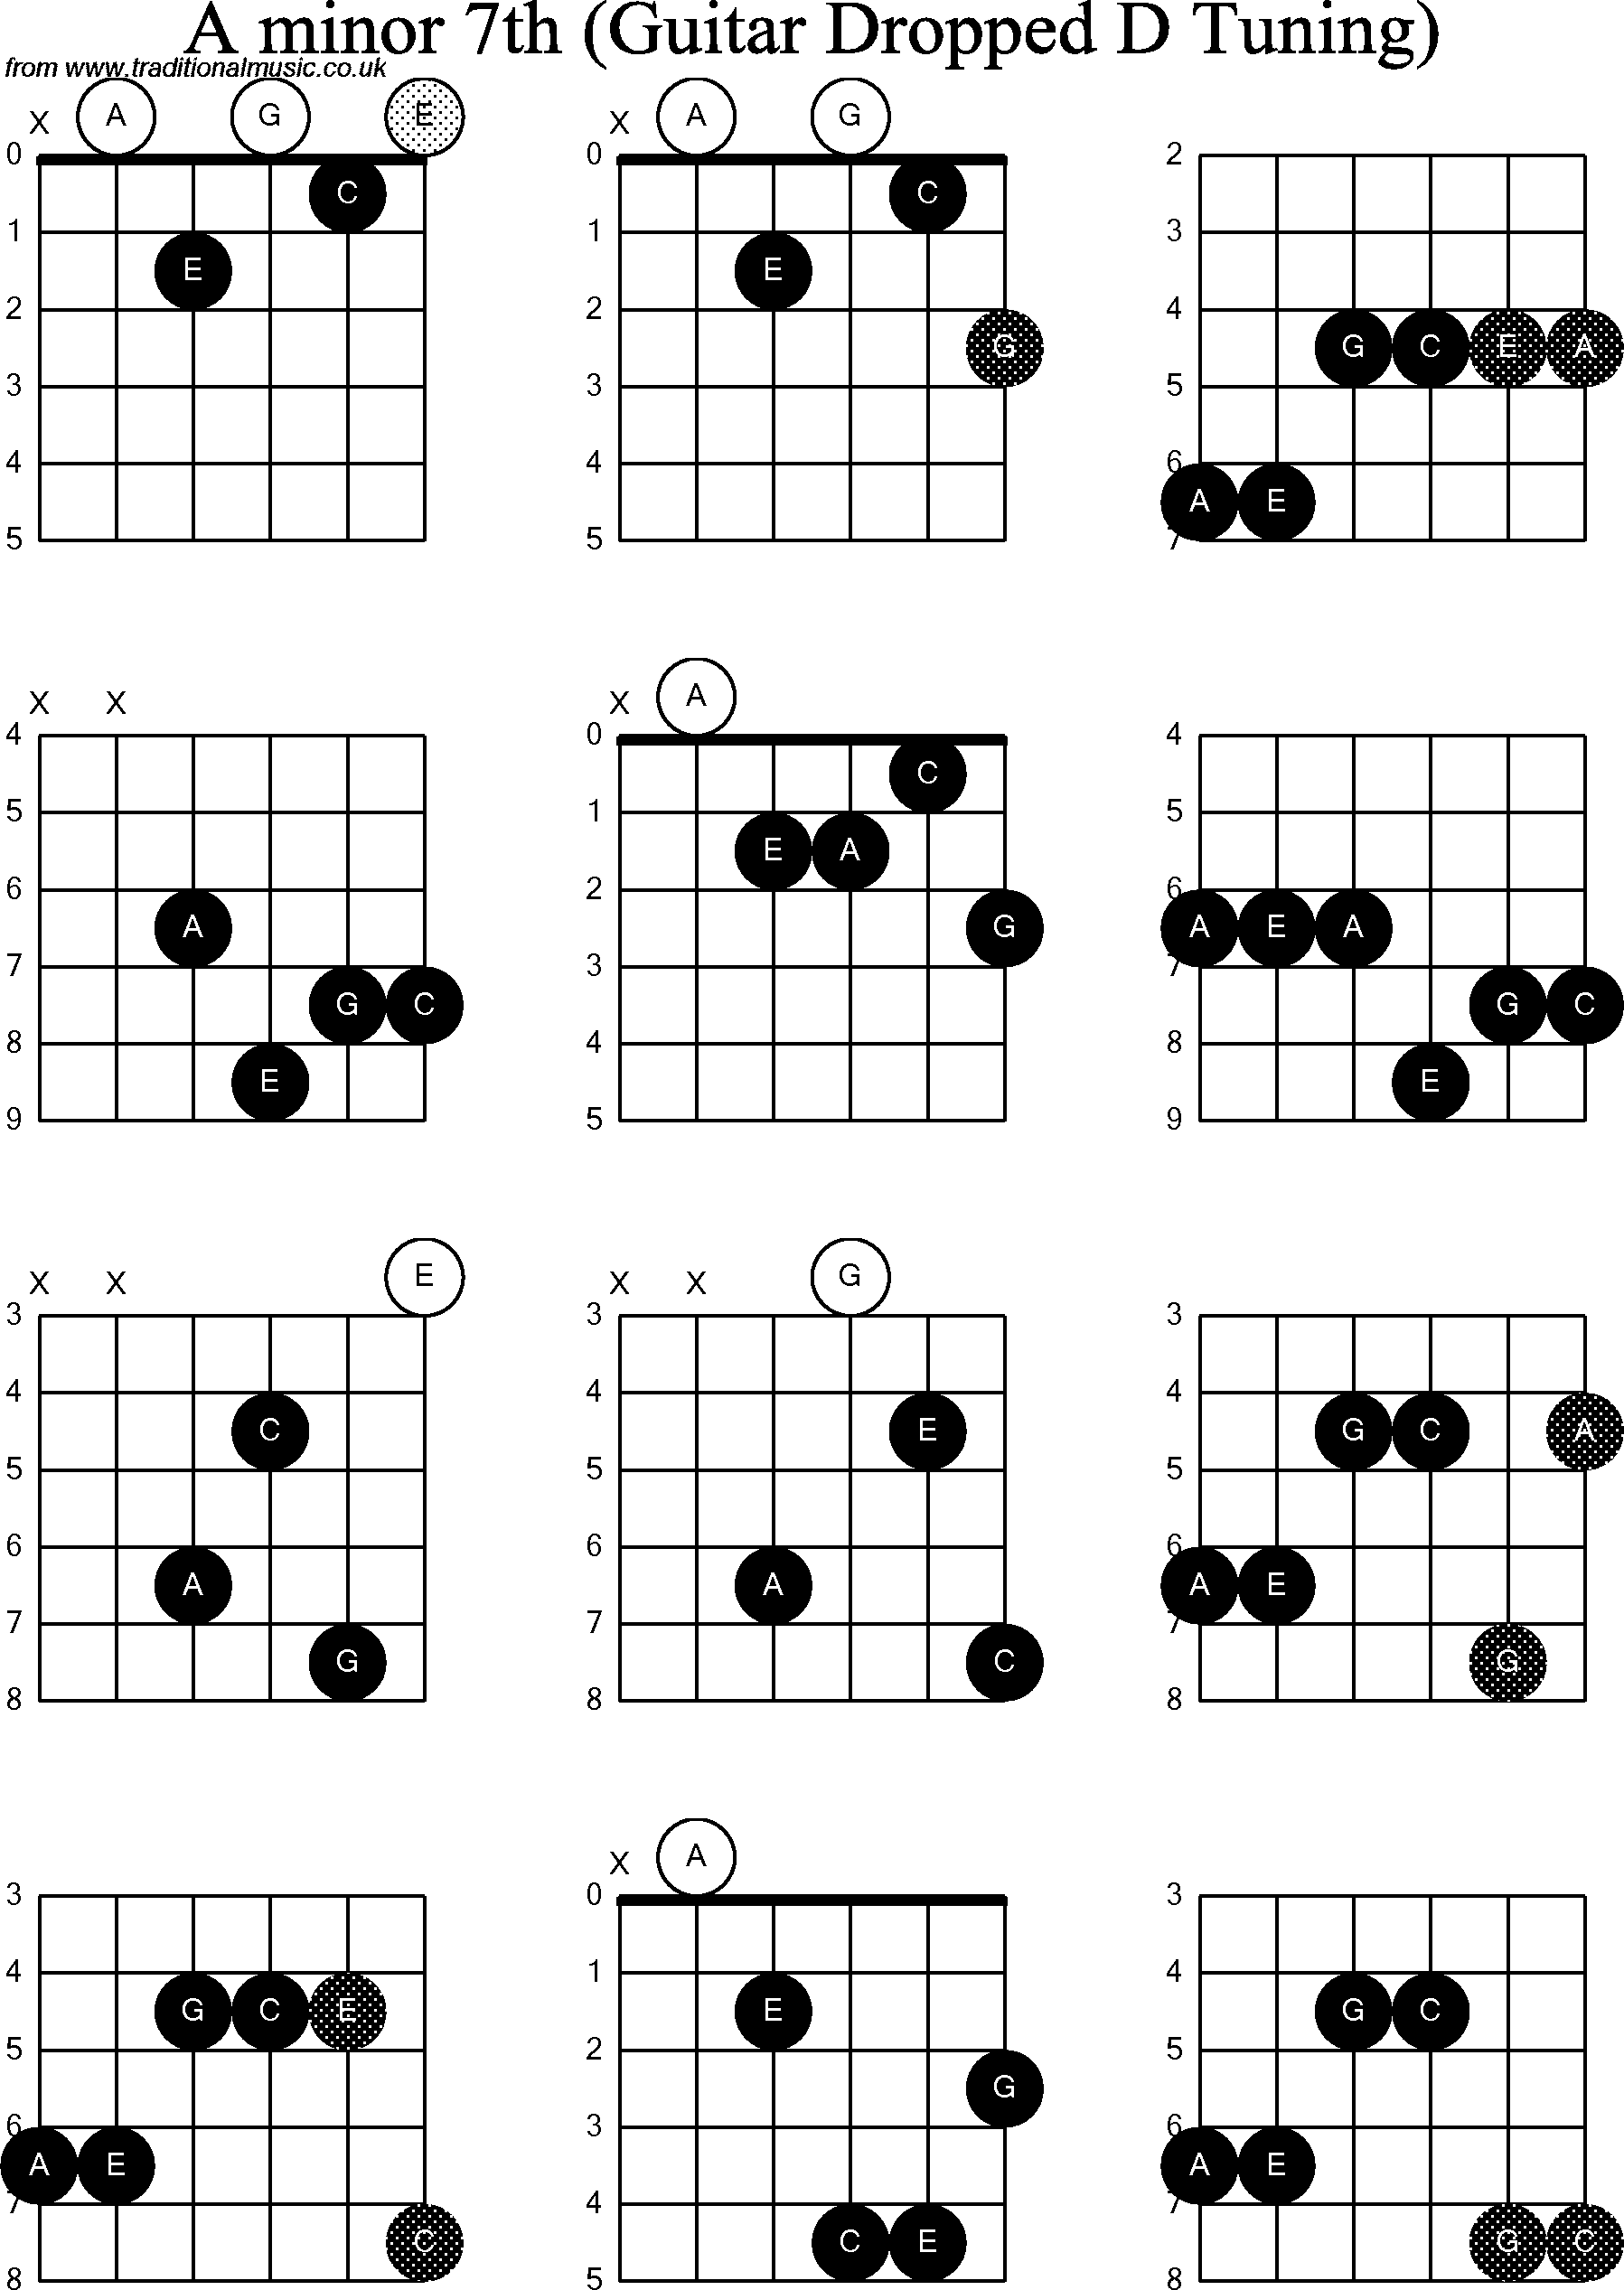 Chord diagrams for Dropped D Guitar(DADGBE), A Minor7th